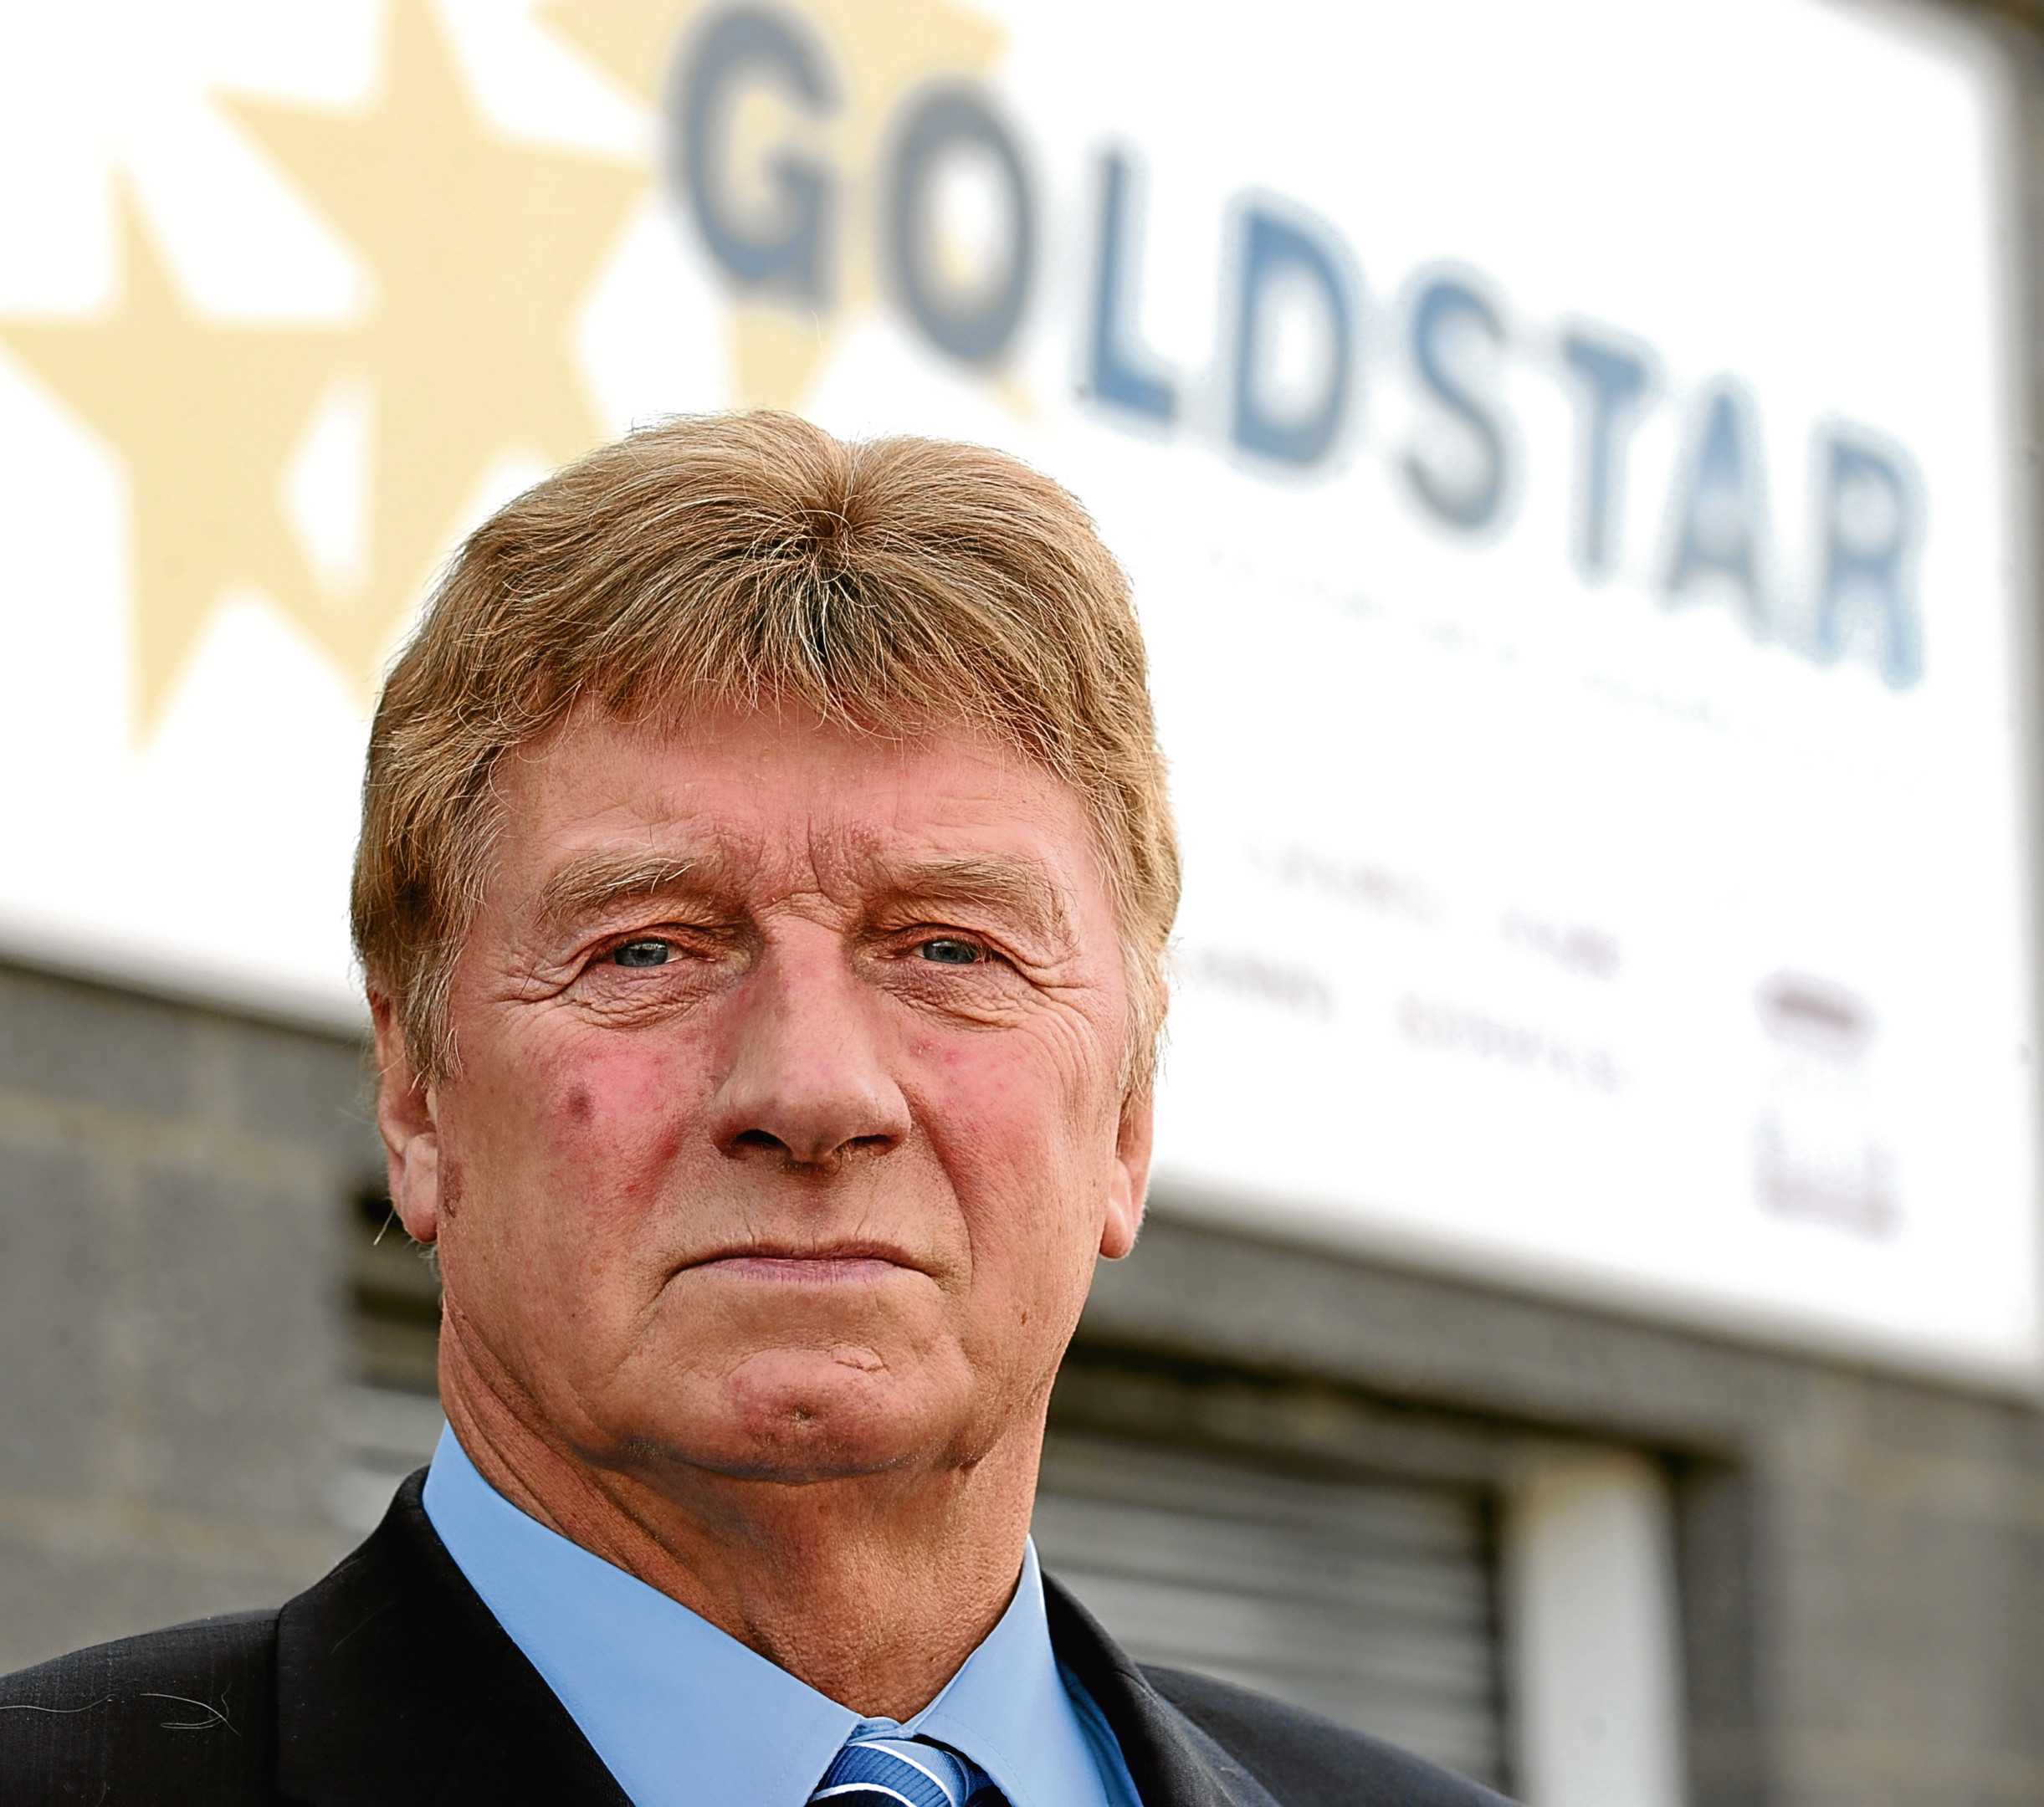 Andy Willox, Scottish Policy convenorfor the Federation of small businesses, pictured at Goldstar, South Esplanade West, Torry, Aberdeen. Picture by JIM IRVINE         29-10-2008 .